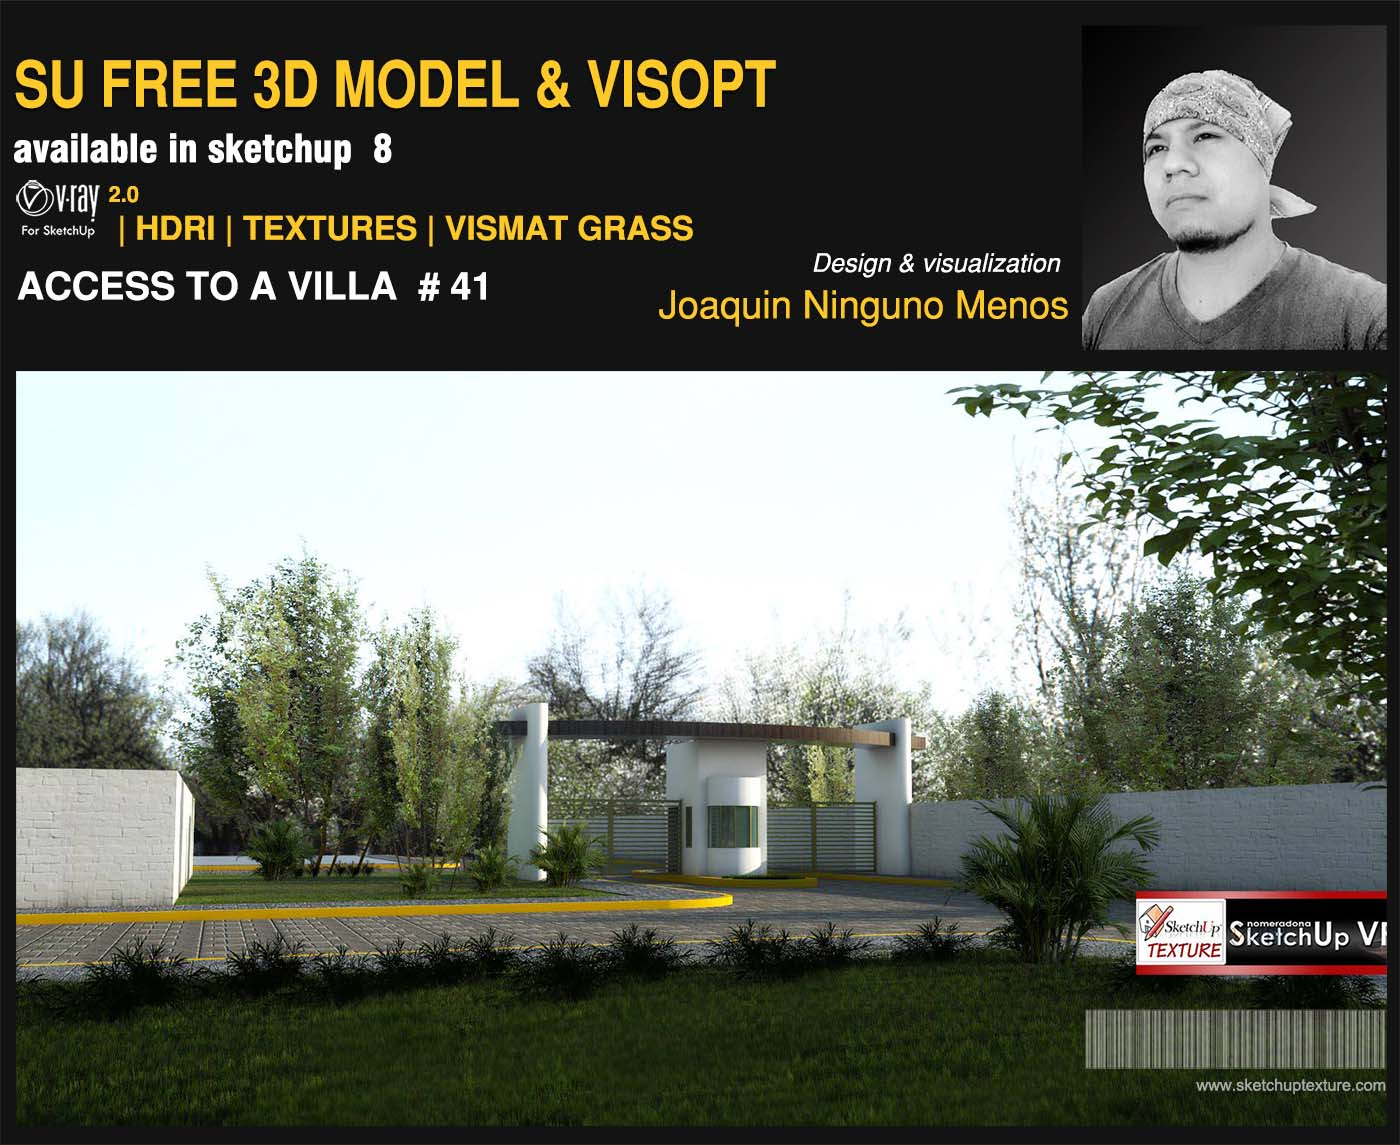 free sketchup model access to a villa #41 and vray Visopt